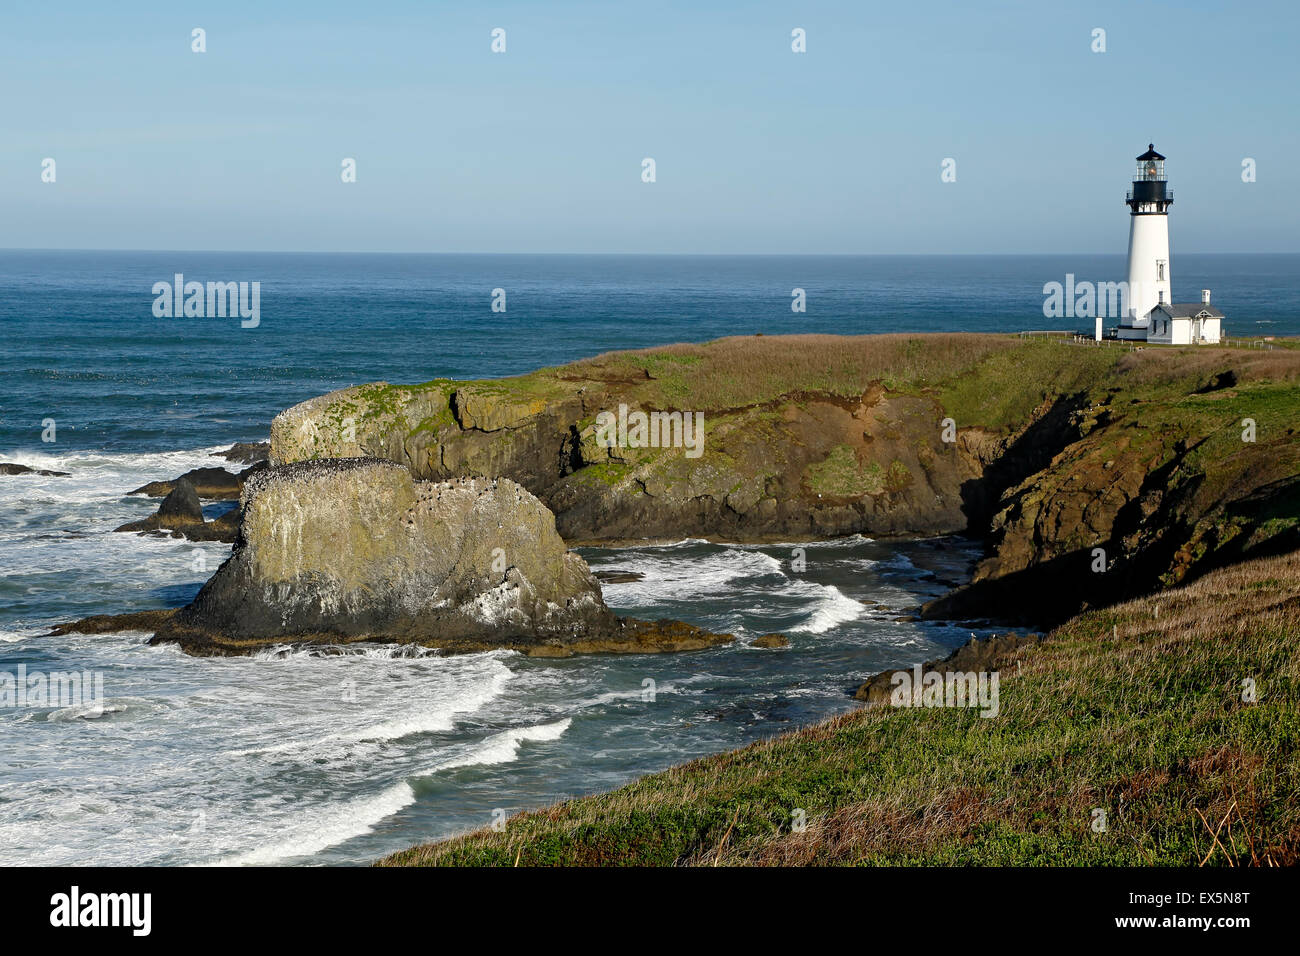 Historic Yaquina Head Lighthouse and rocky headland, Yaquina Head Outstanding Natural Area, Newport, Oregon USA - Stock Image